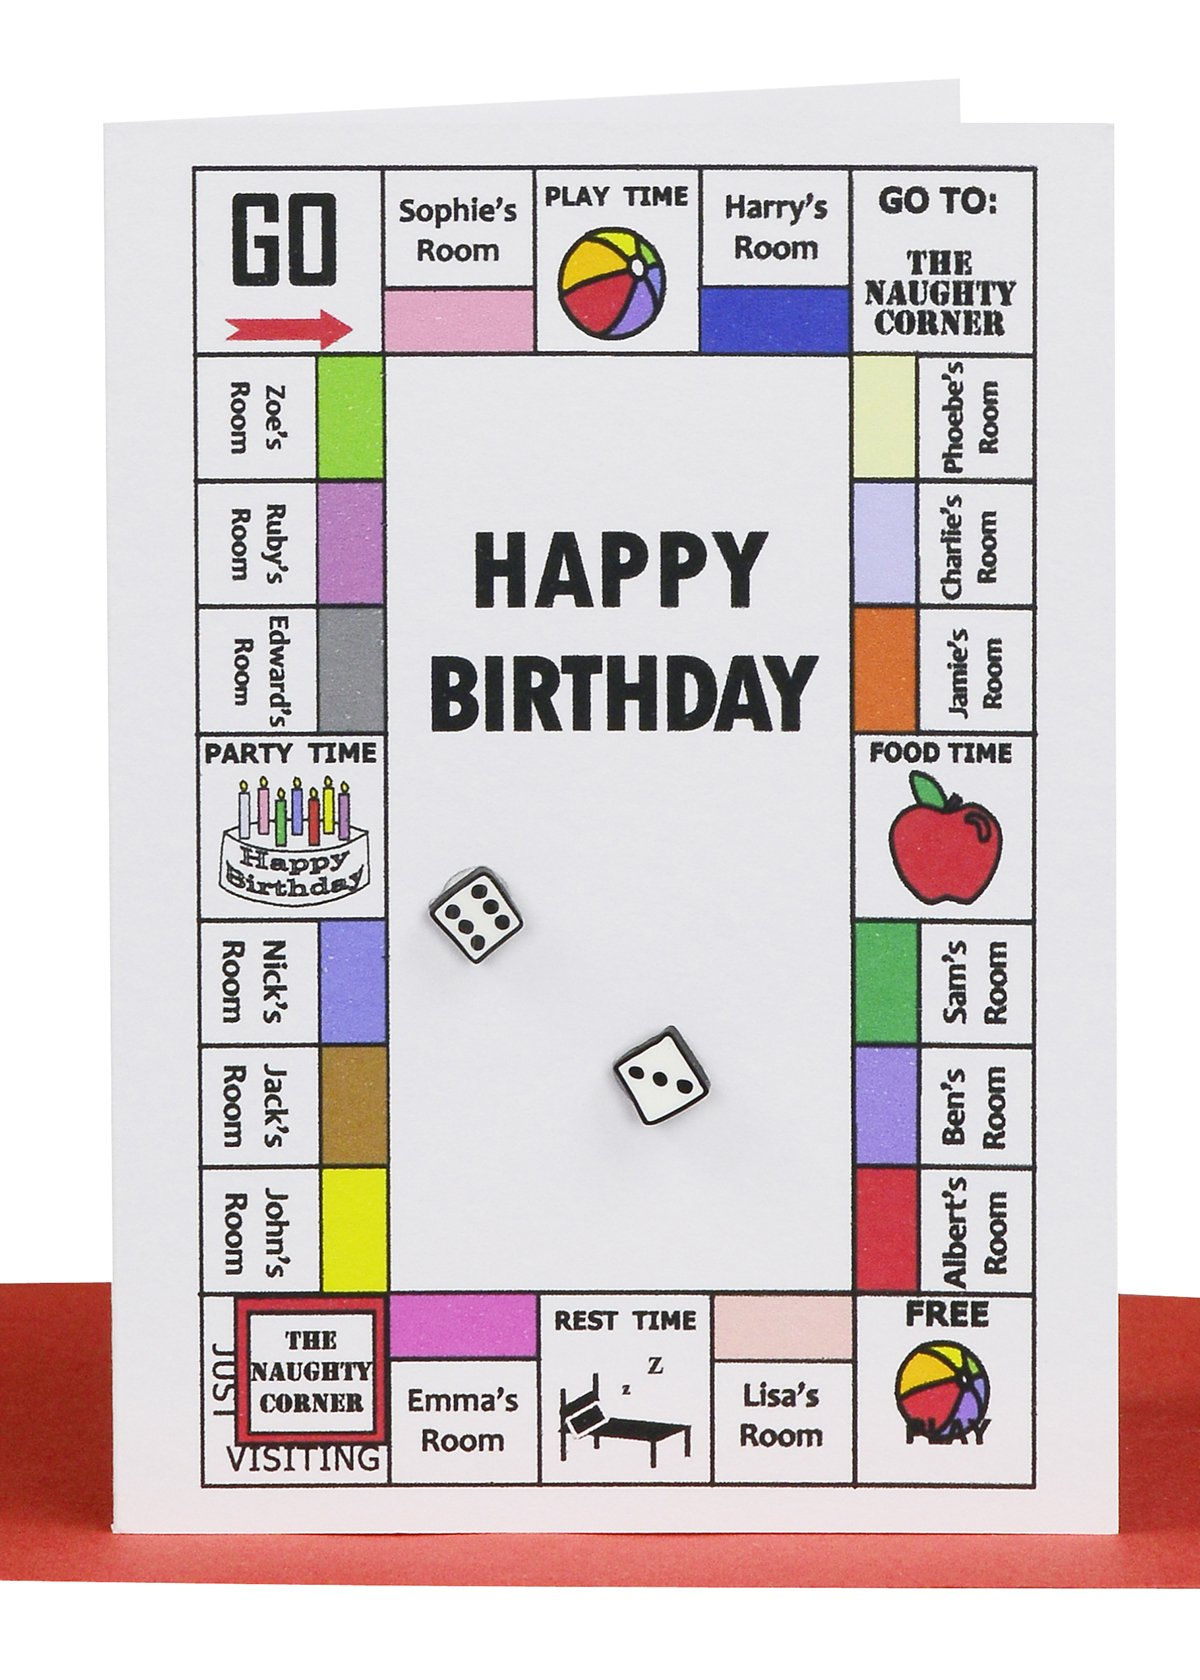 Happy Birthday Gift Card Monopoly Game